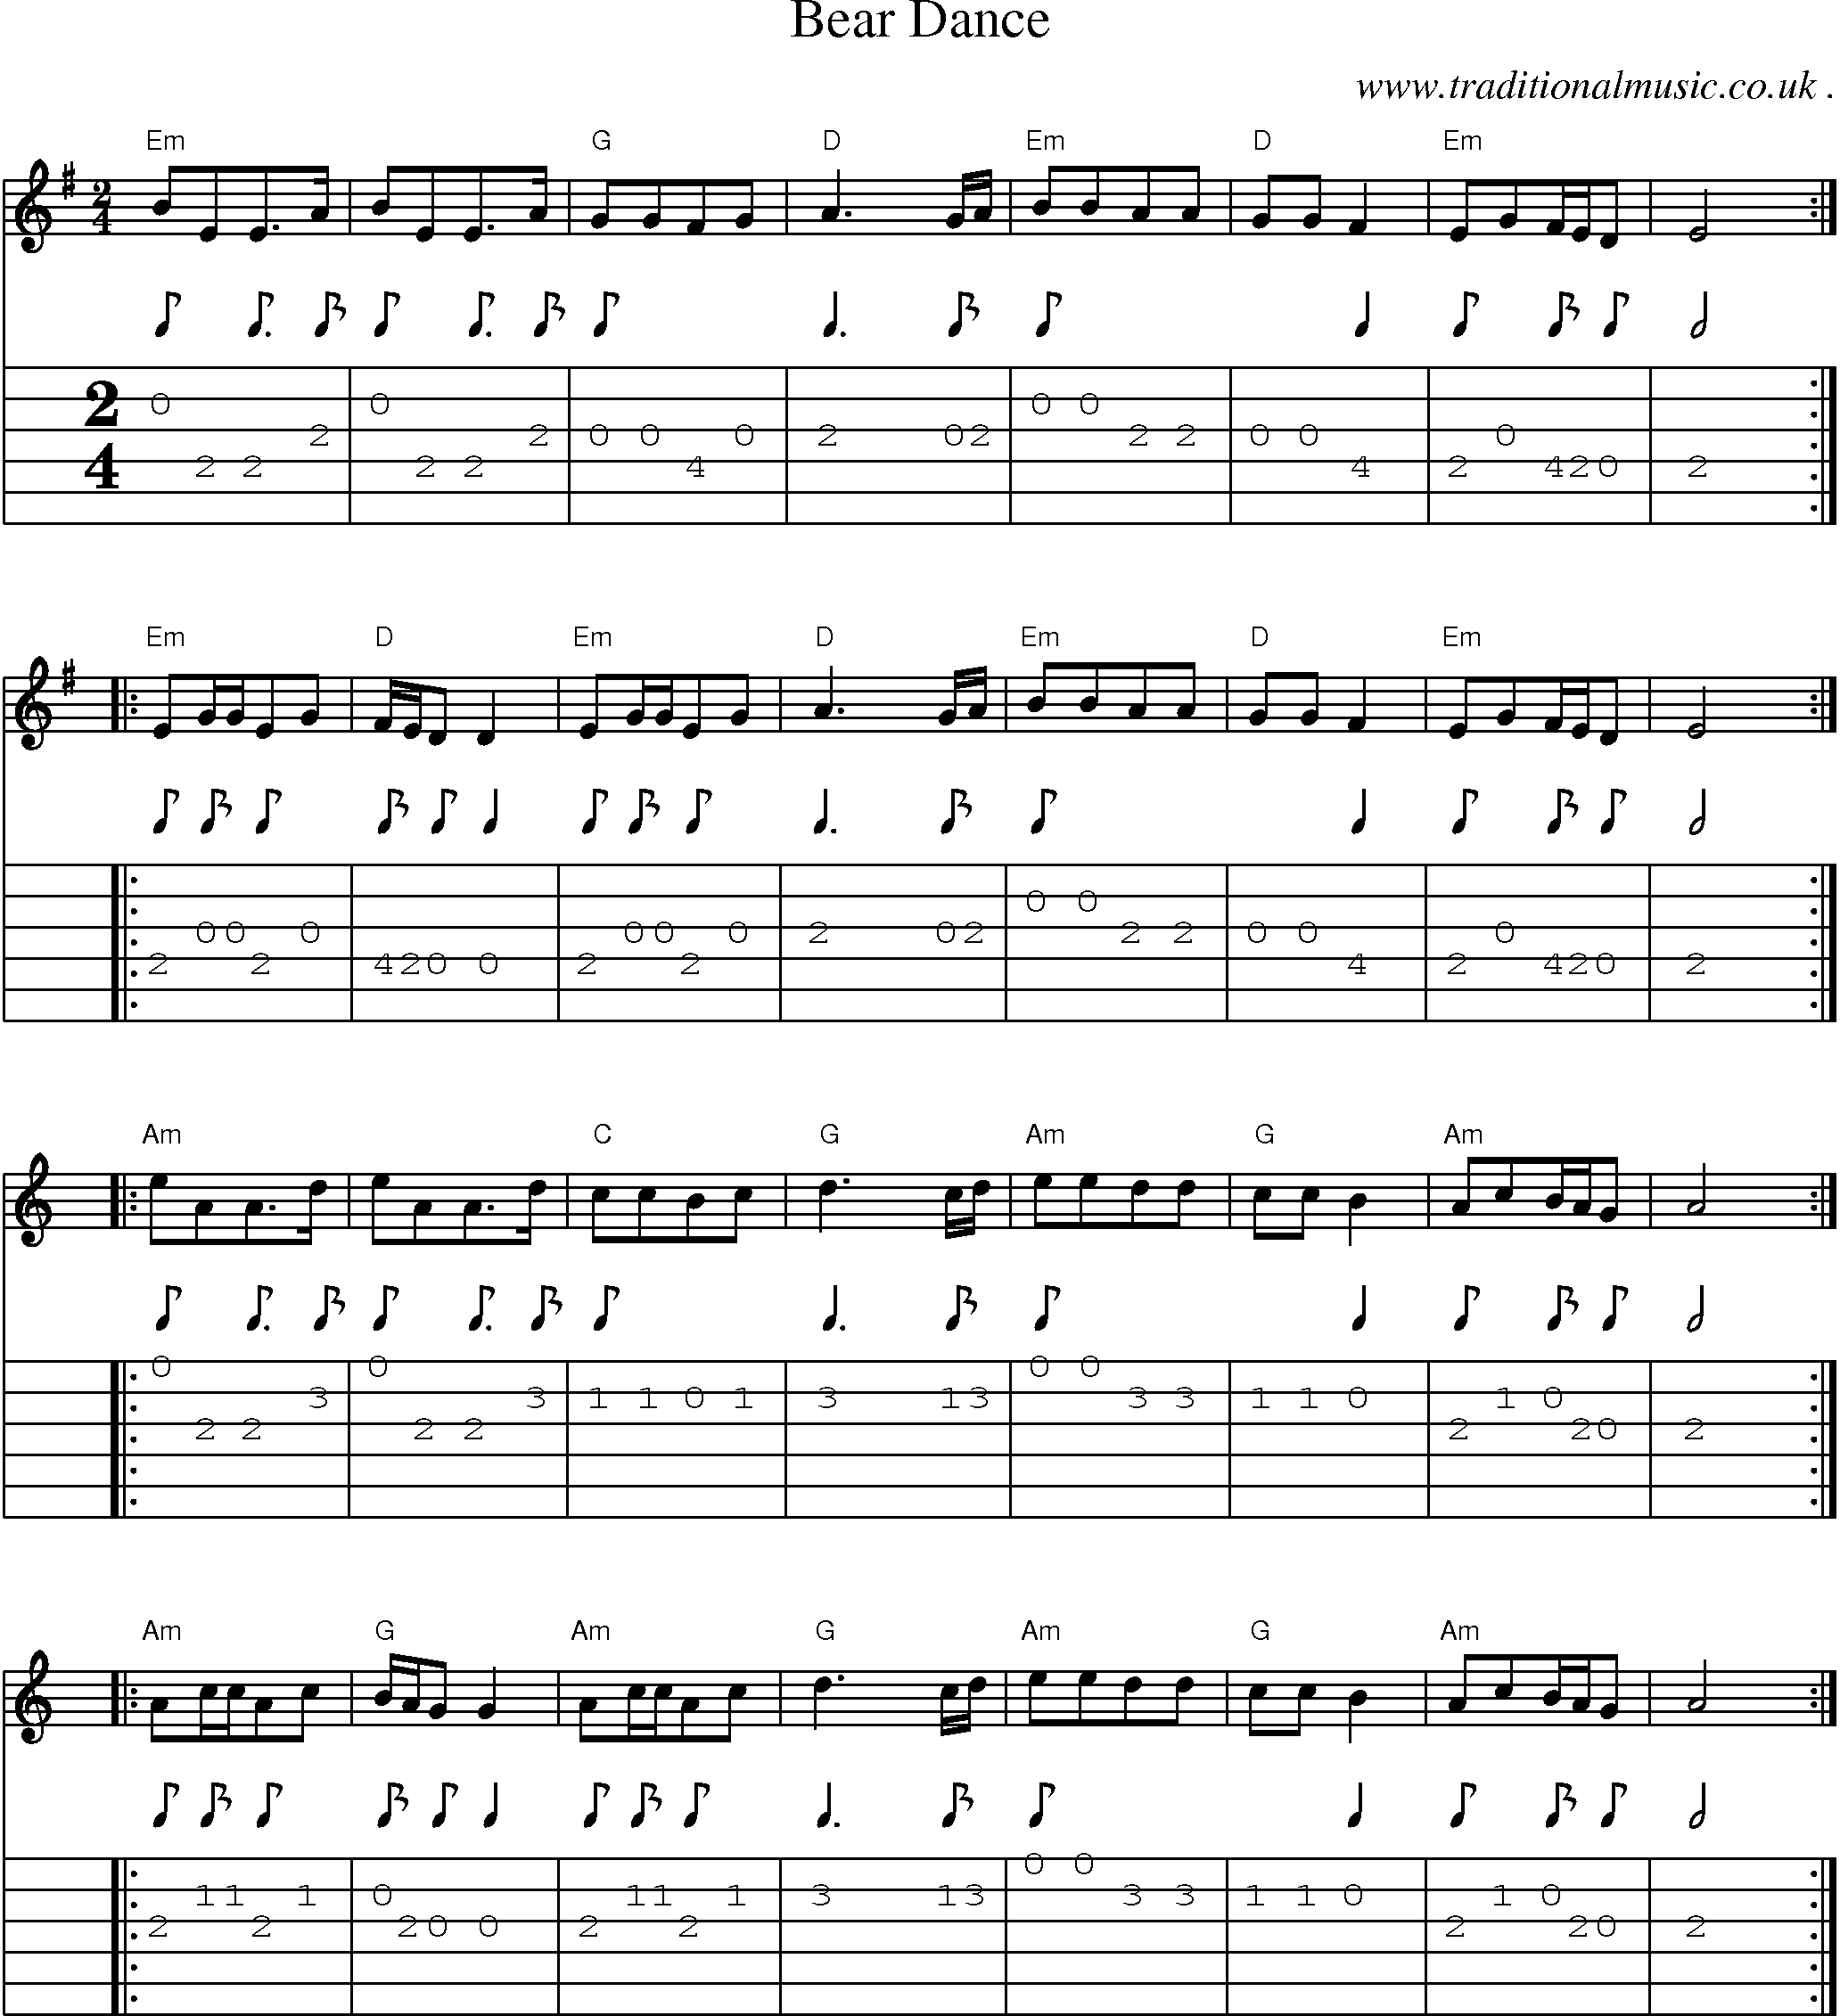 Music Score And Guitar Tabs For Bear Dance